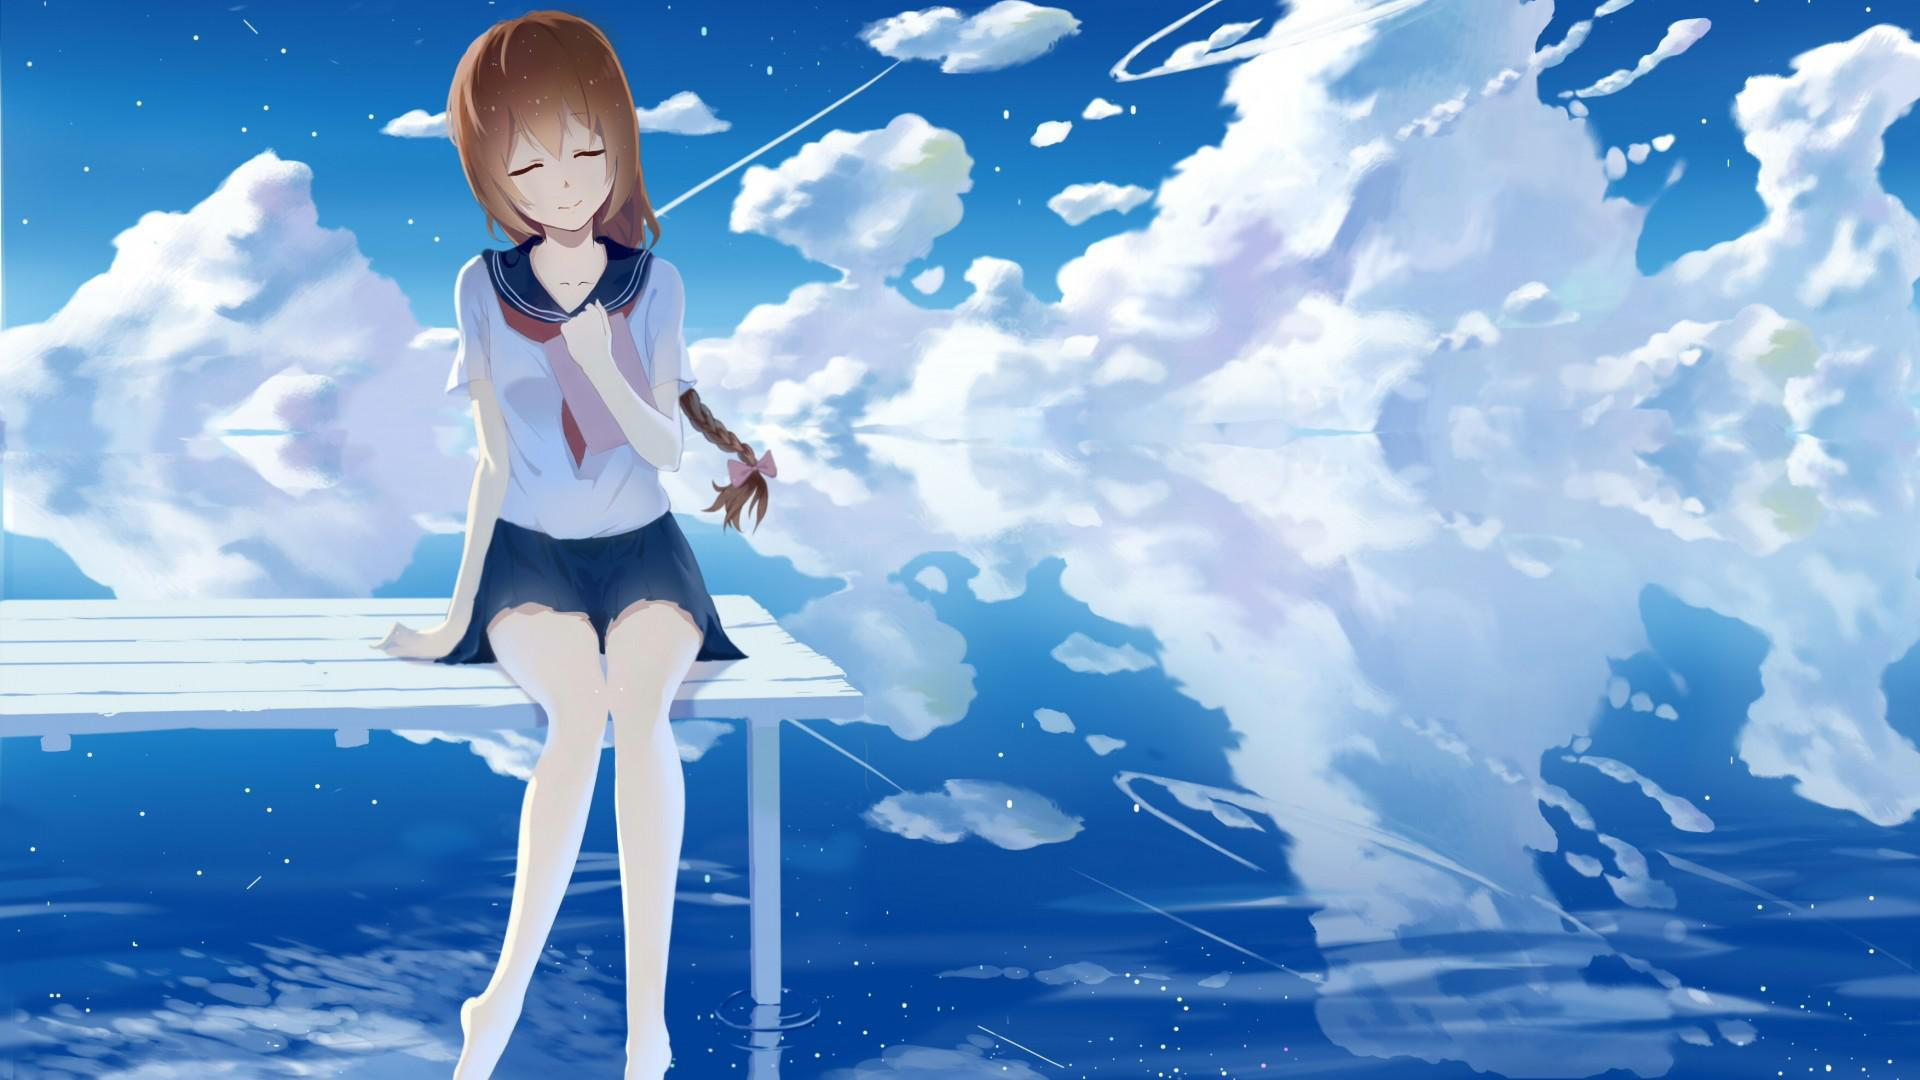 Sakura Falling Live Wallpaper Iphone Wallpaper Poetry And Dream Girl Good Looking Anime Hd